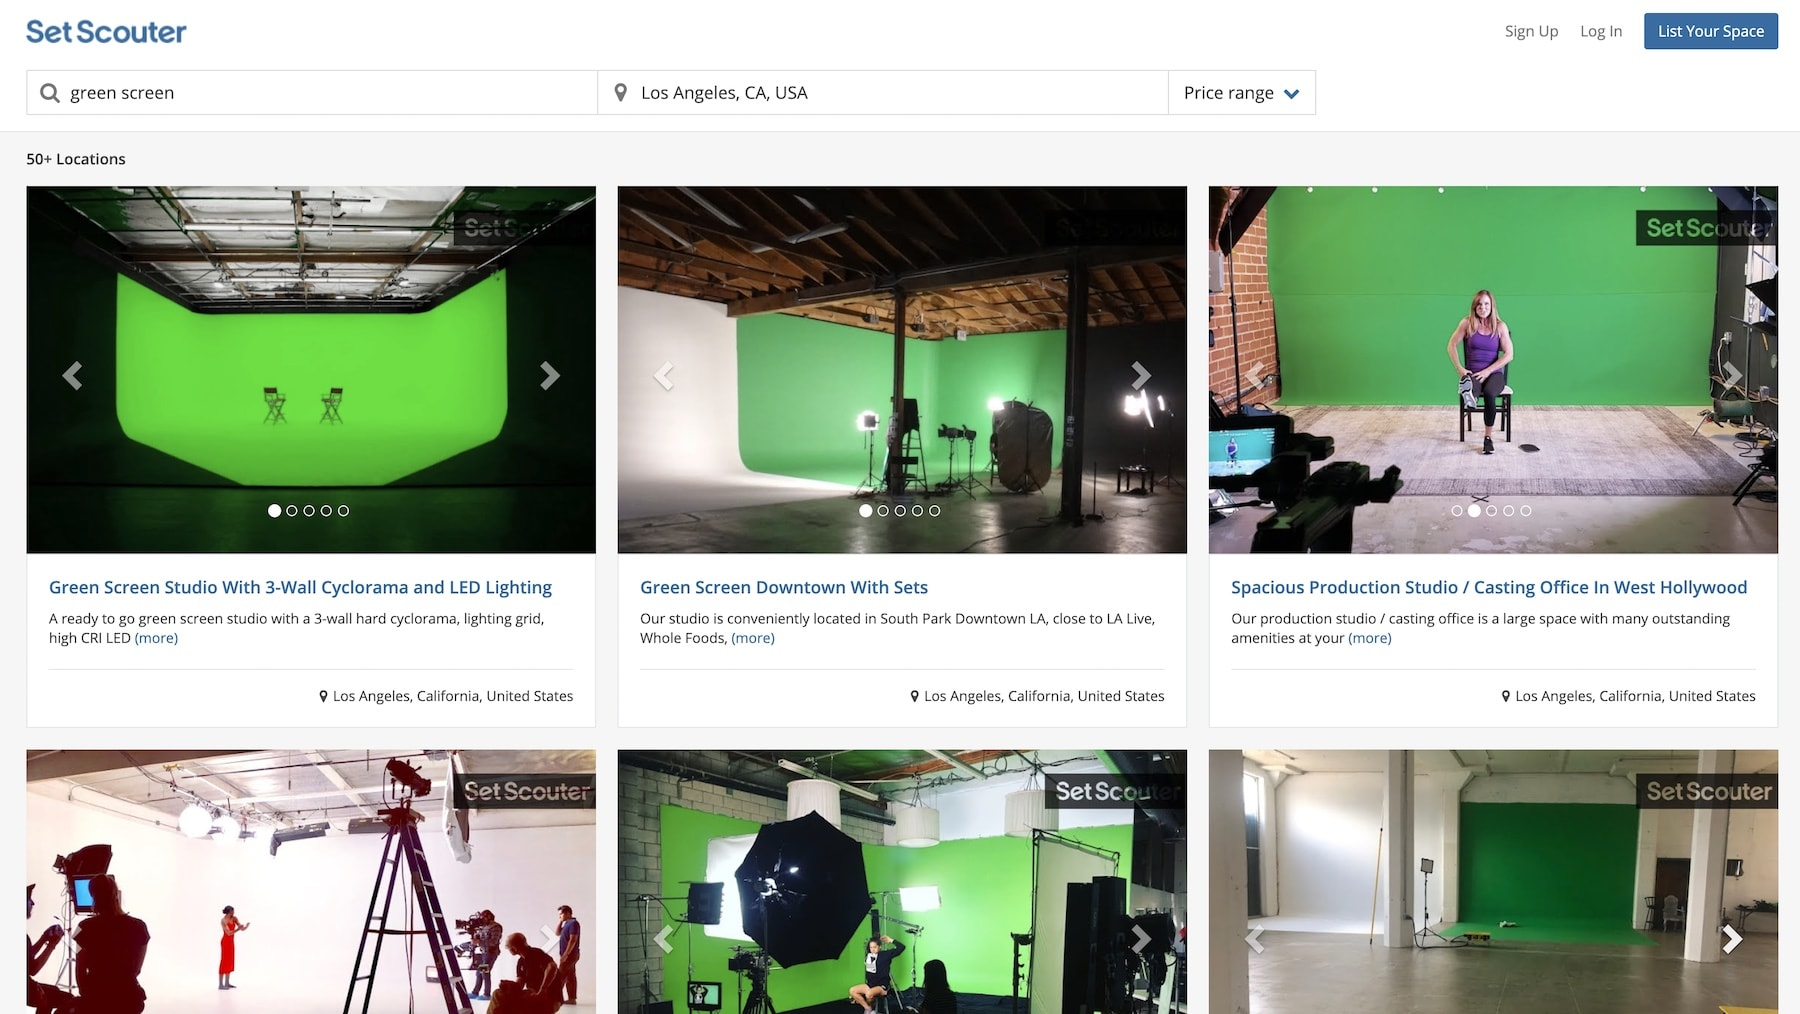 SetScouter - Location Scouting for Producers - StudioBinder